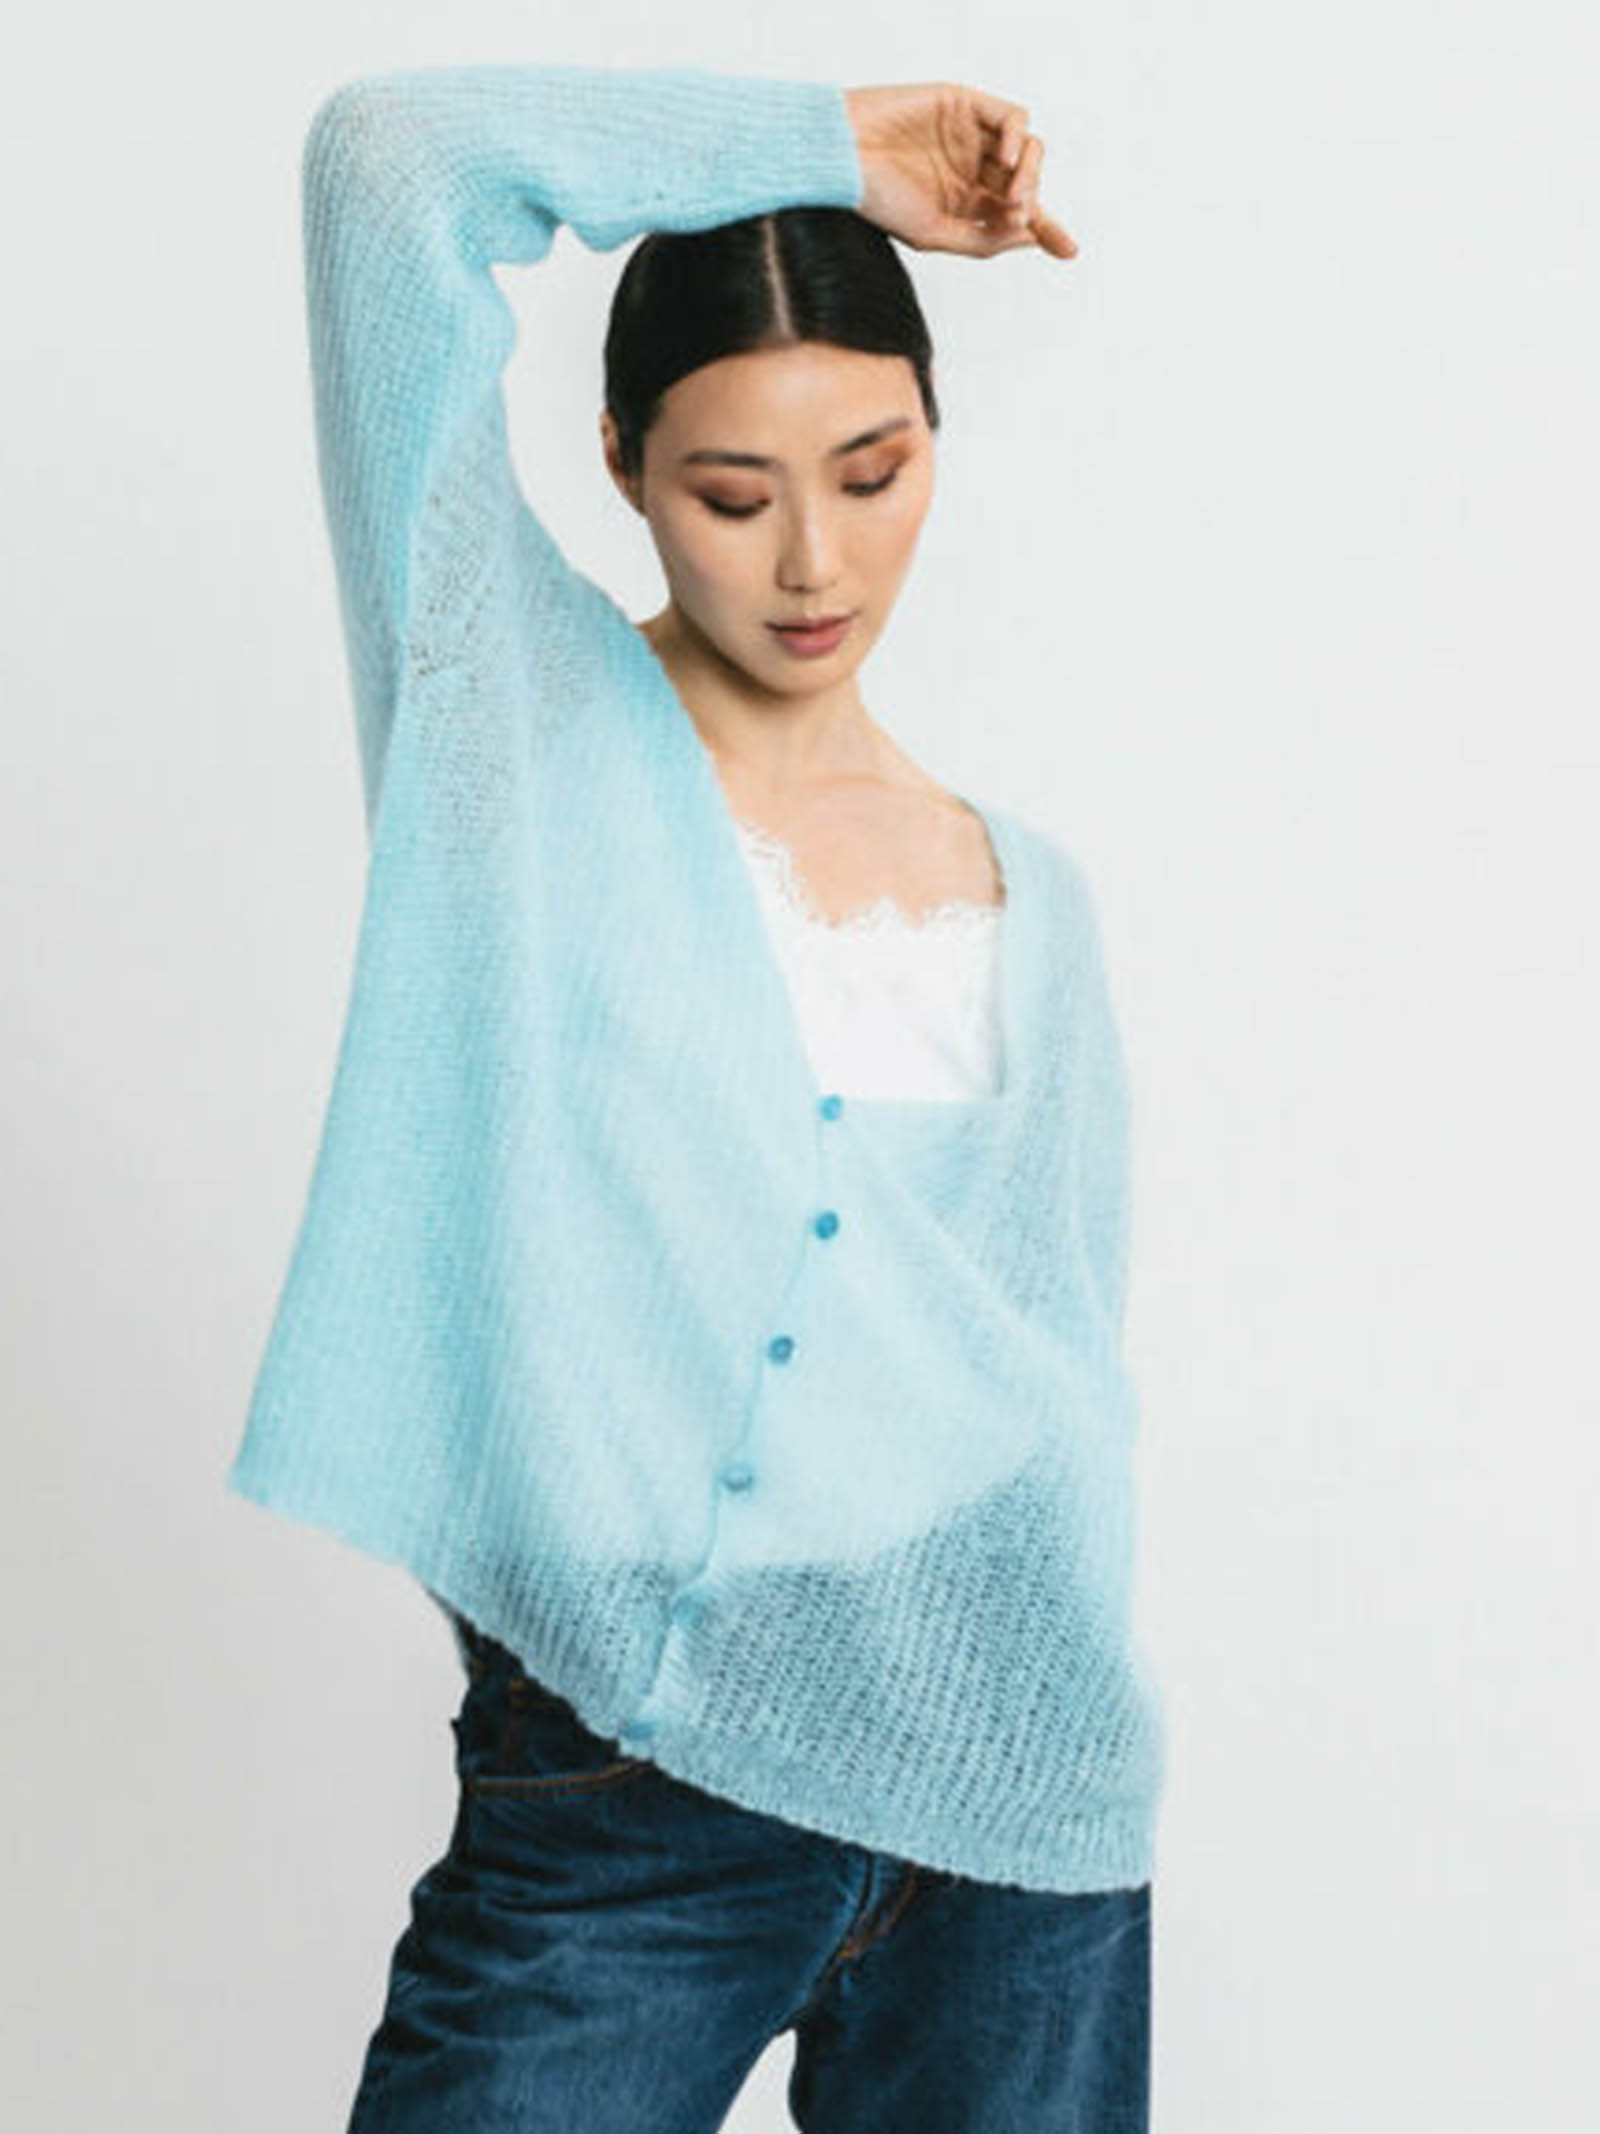 Women's Clothing Cardigan in Sky-Blue Mohair with Matching Buttons and V-neck Pink Memories | Knitwear | 1114511